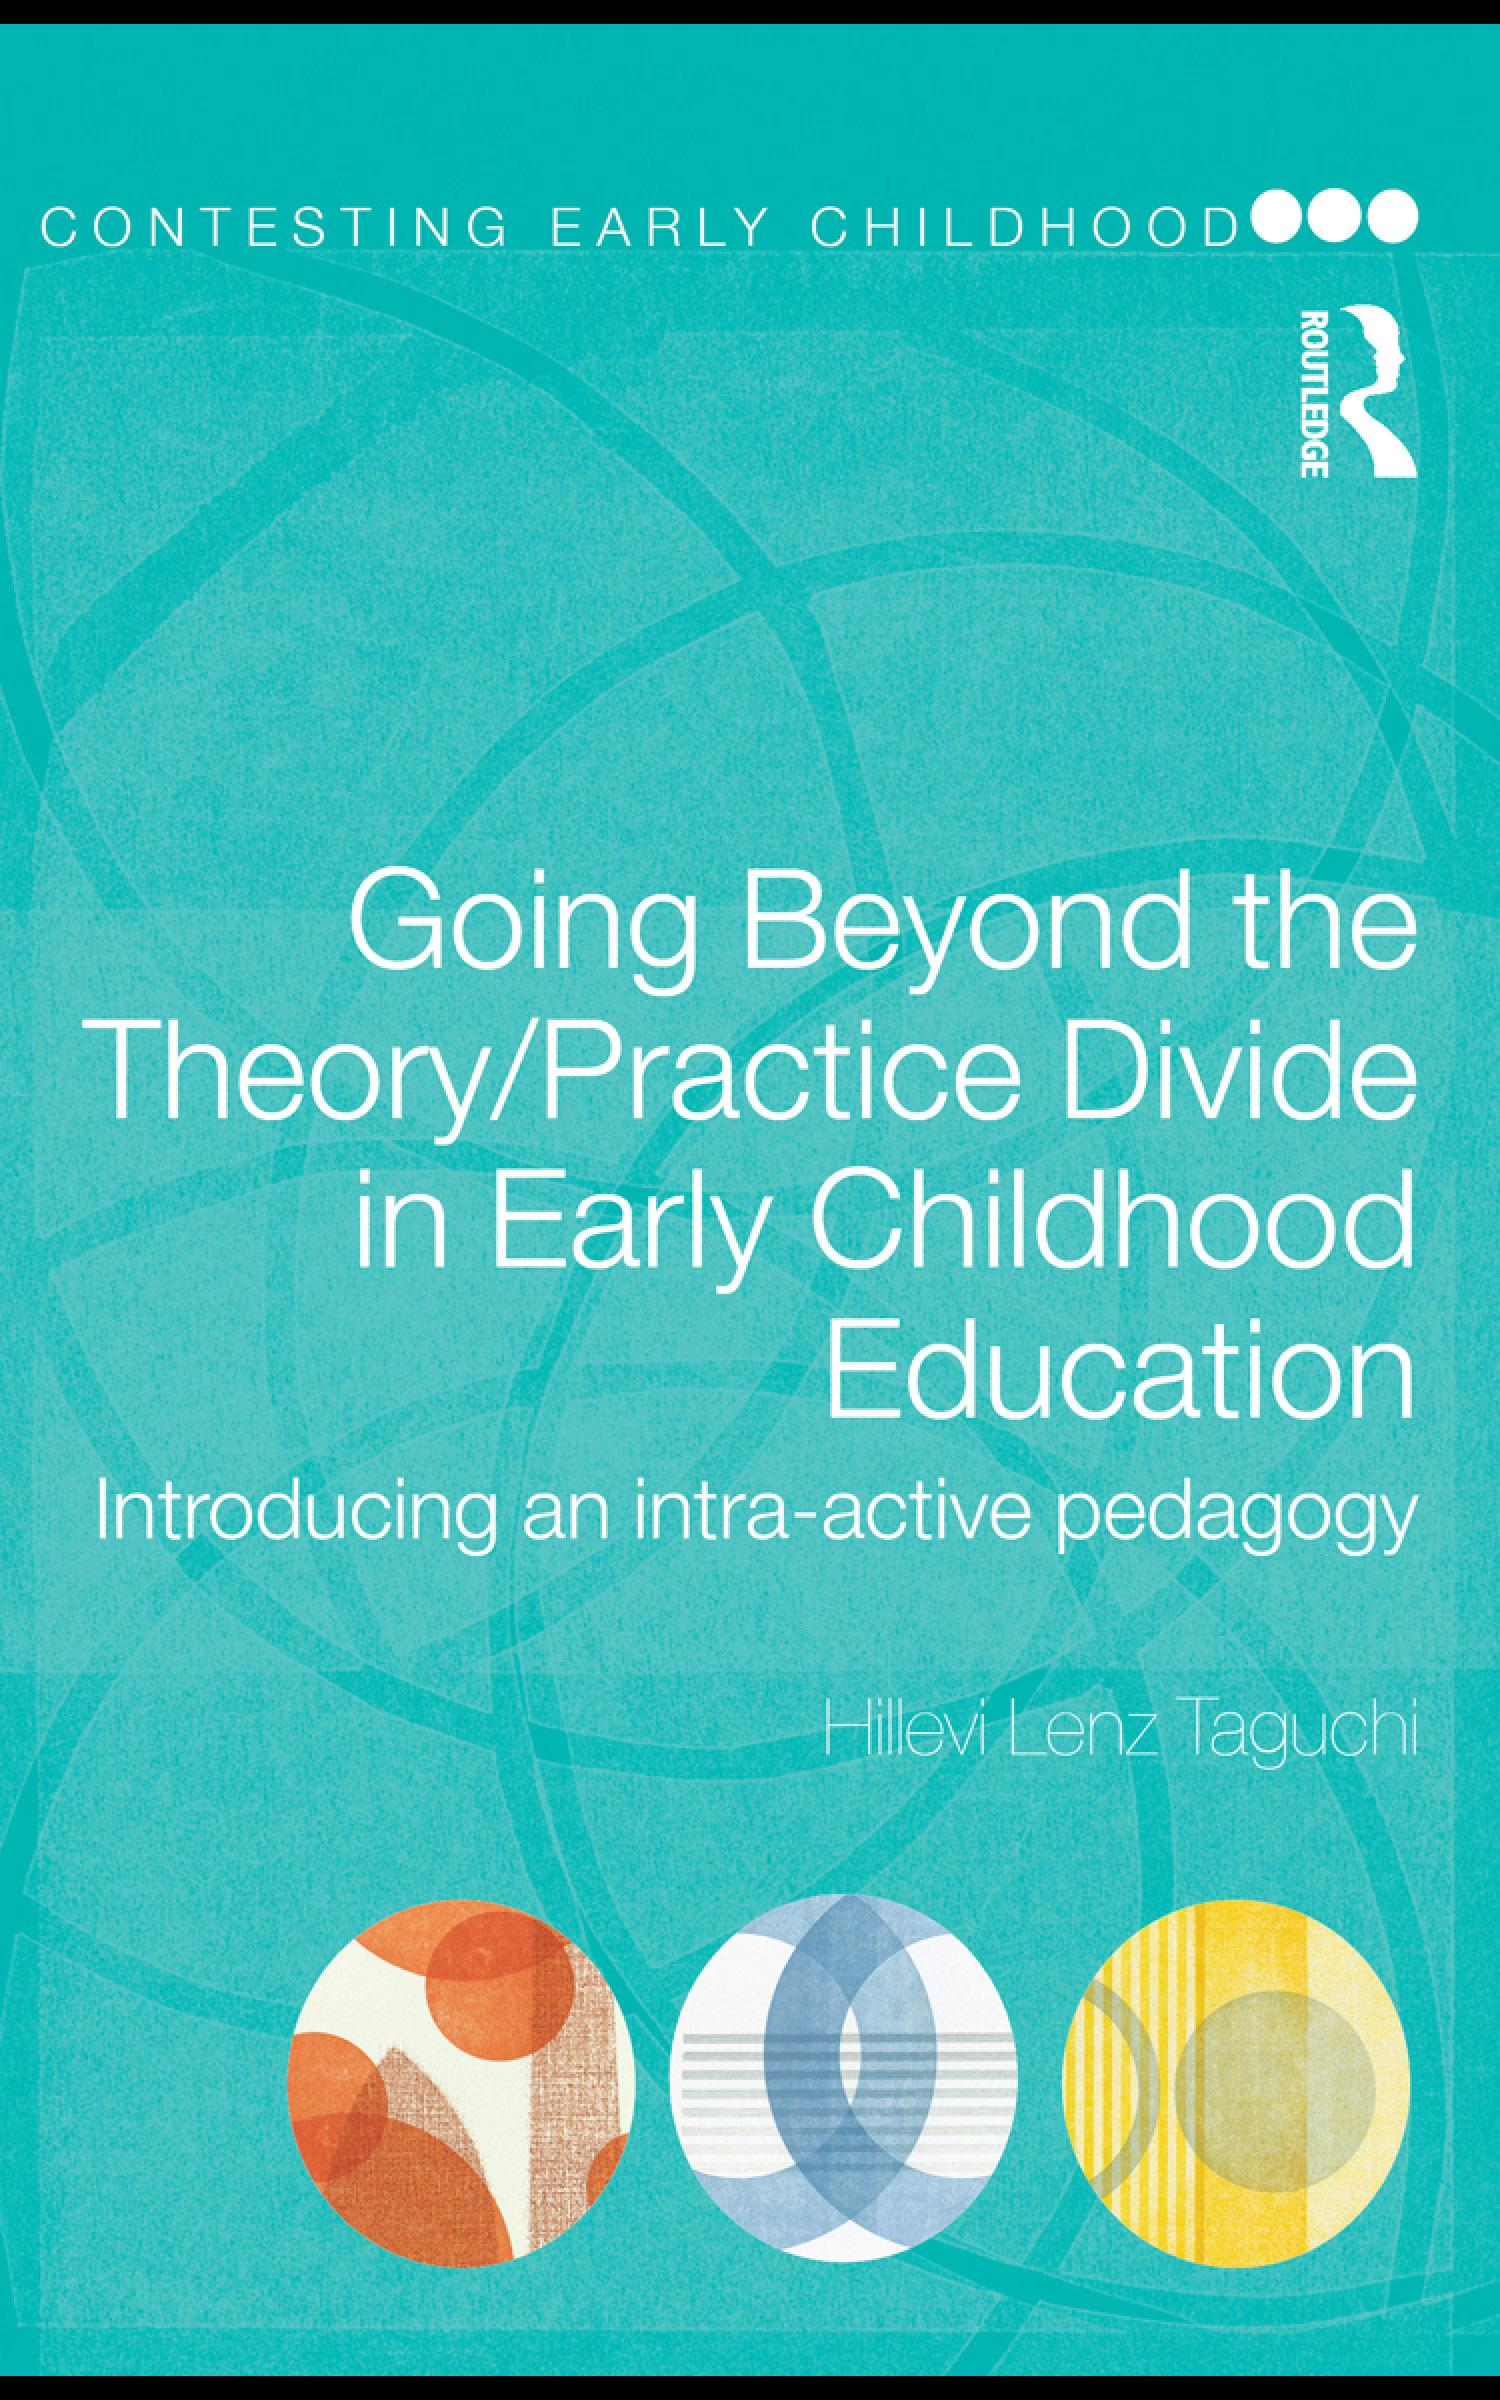 Going Beyond the Theory/Practice Divide in Early Childhood Education: Introducing an Intra-Active Pedagogy